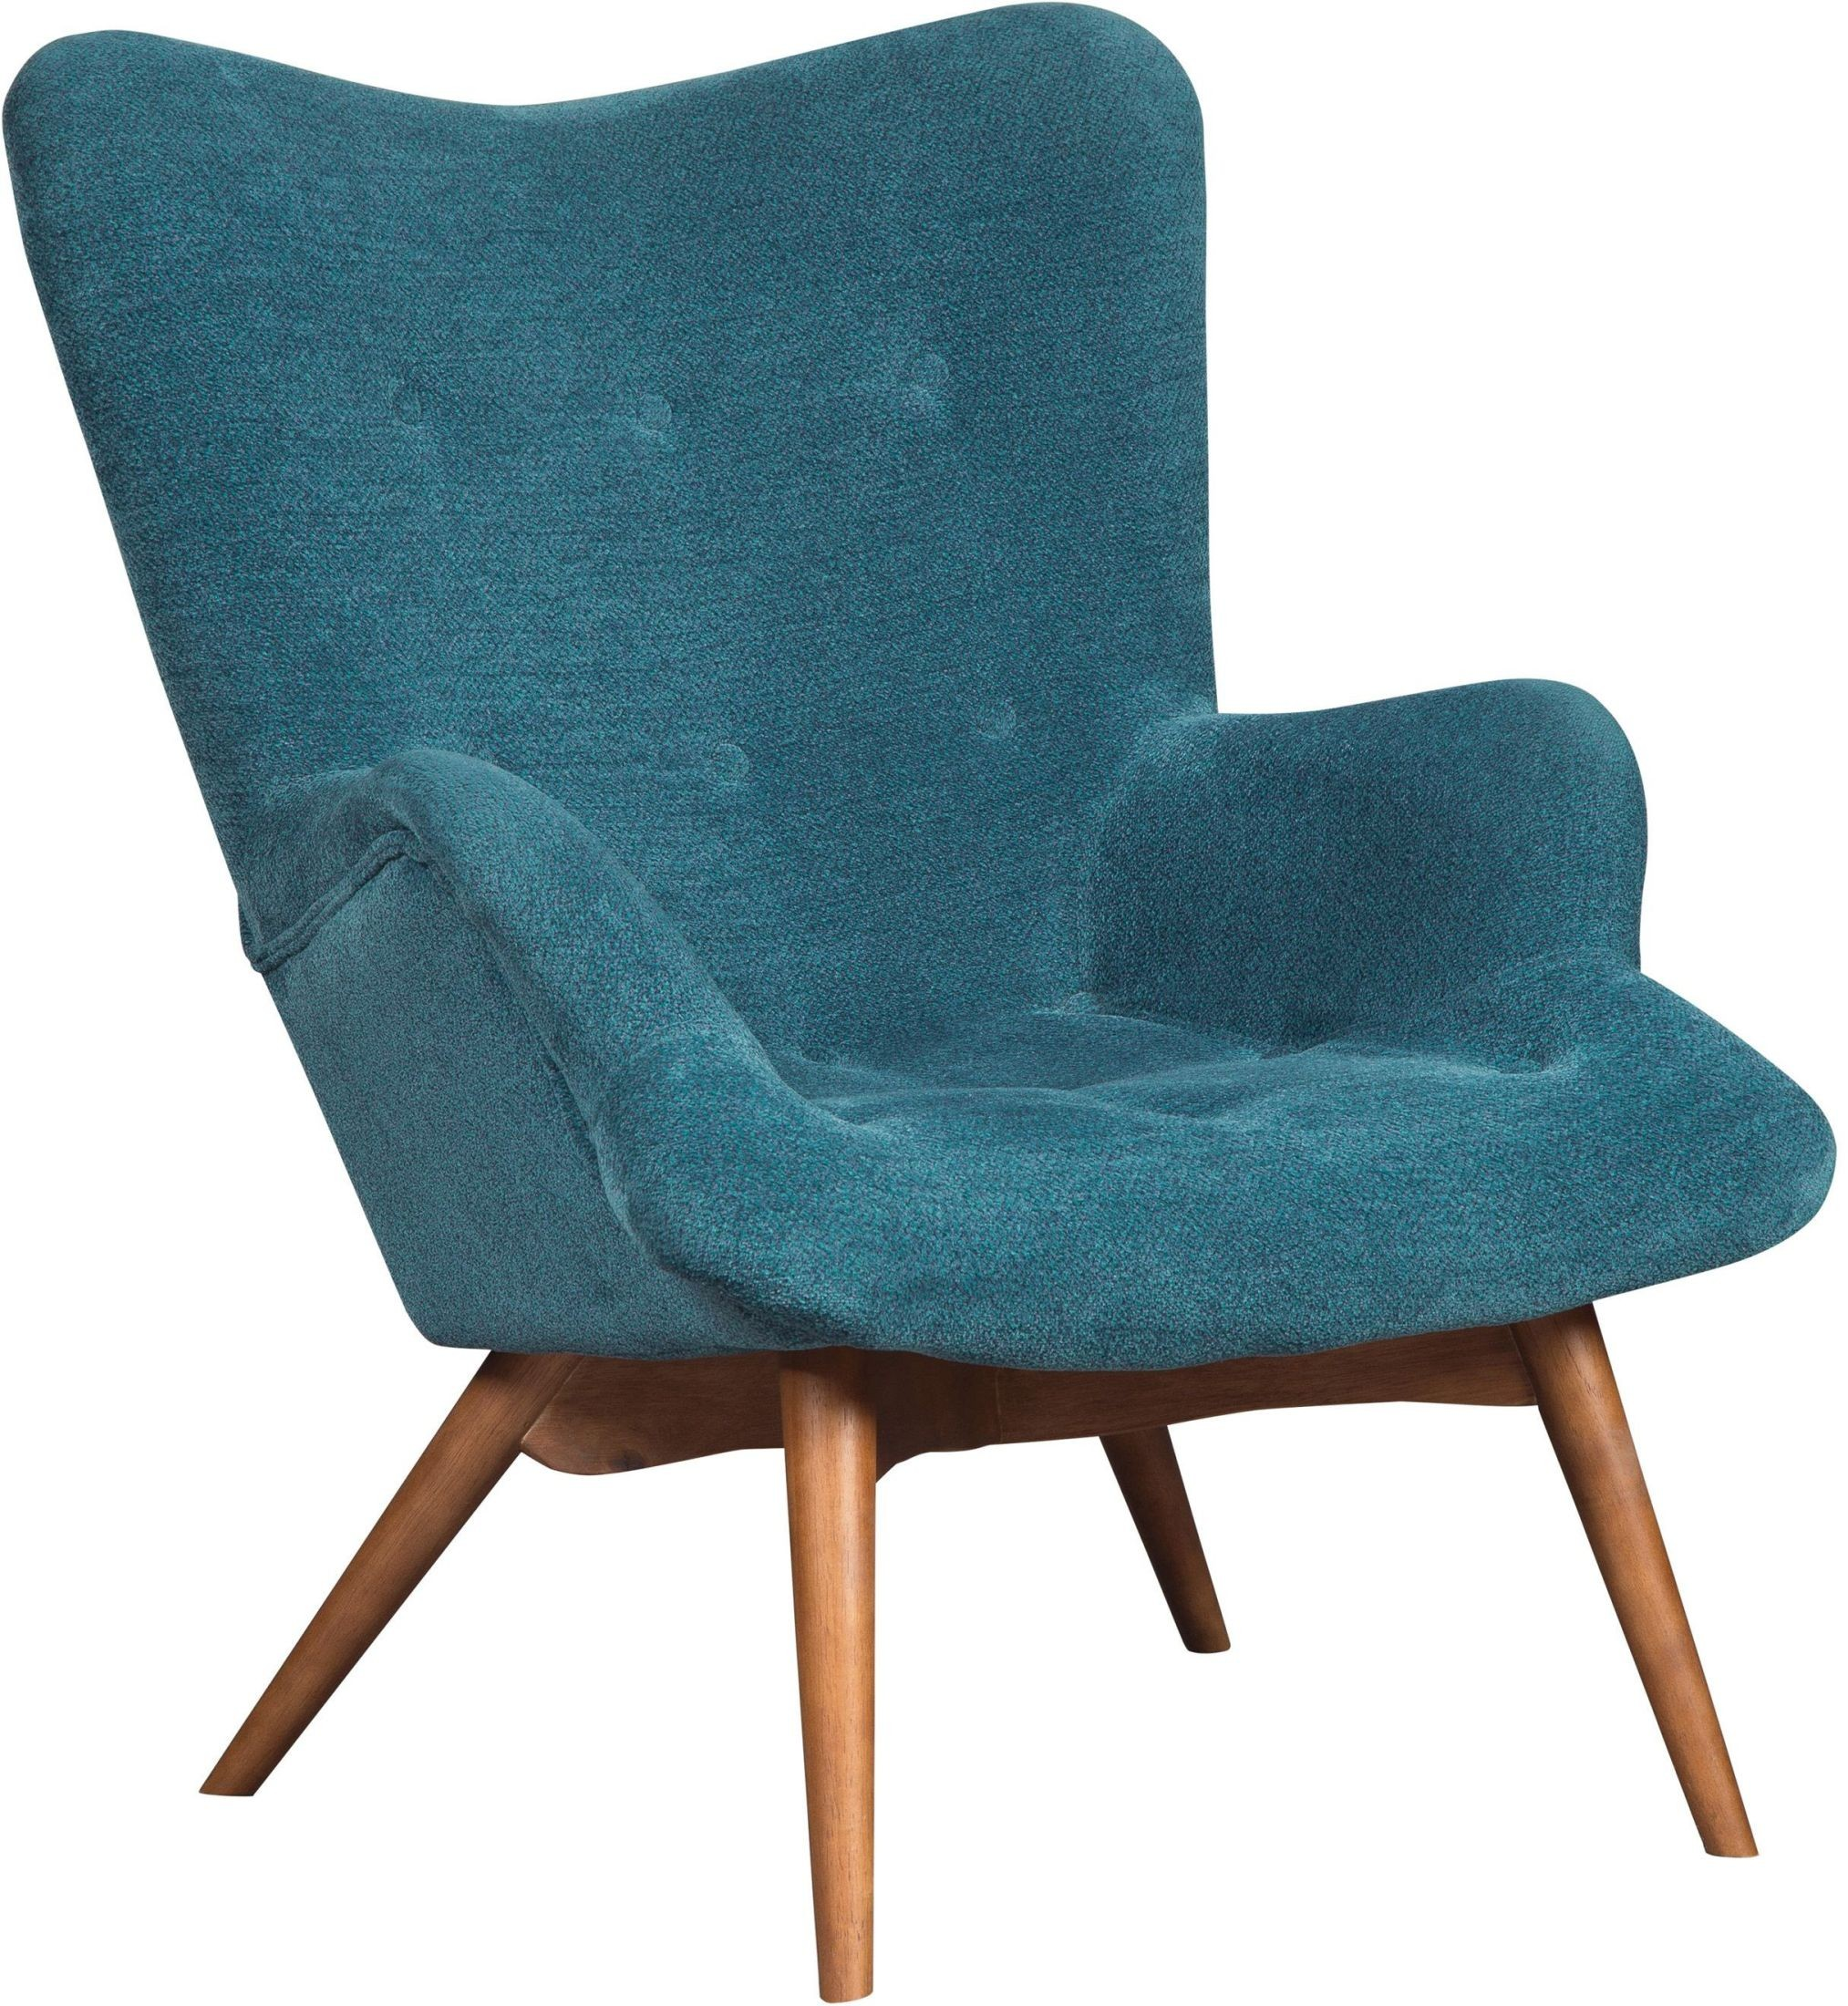 Pelsor Turquoise Accent Chair From Ashley